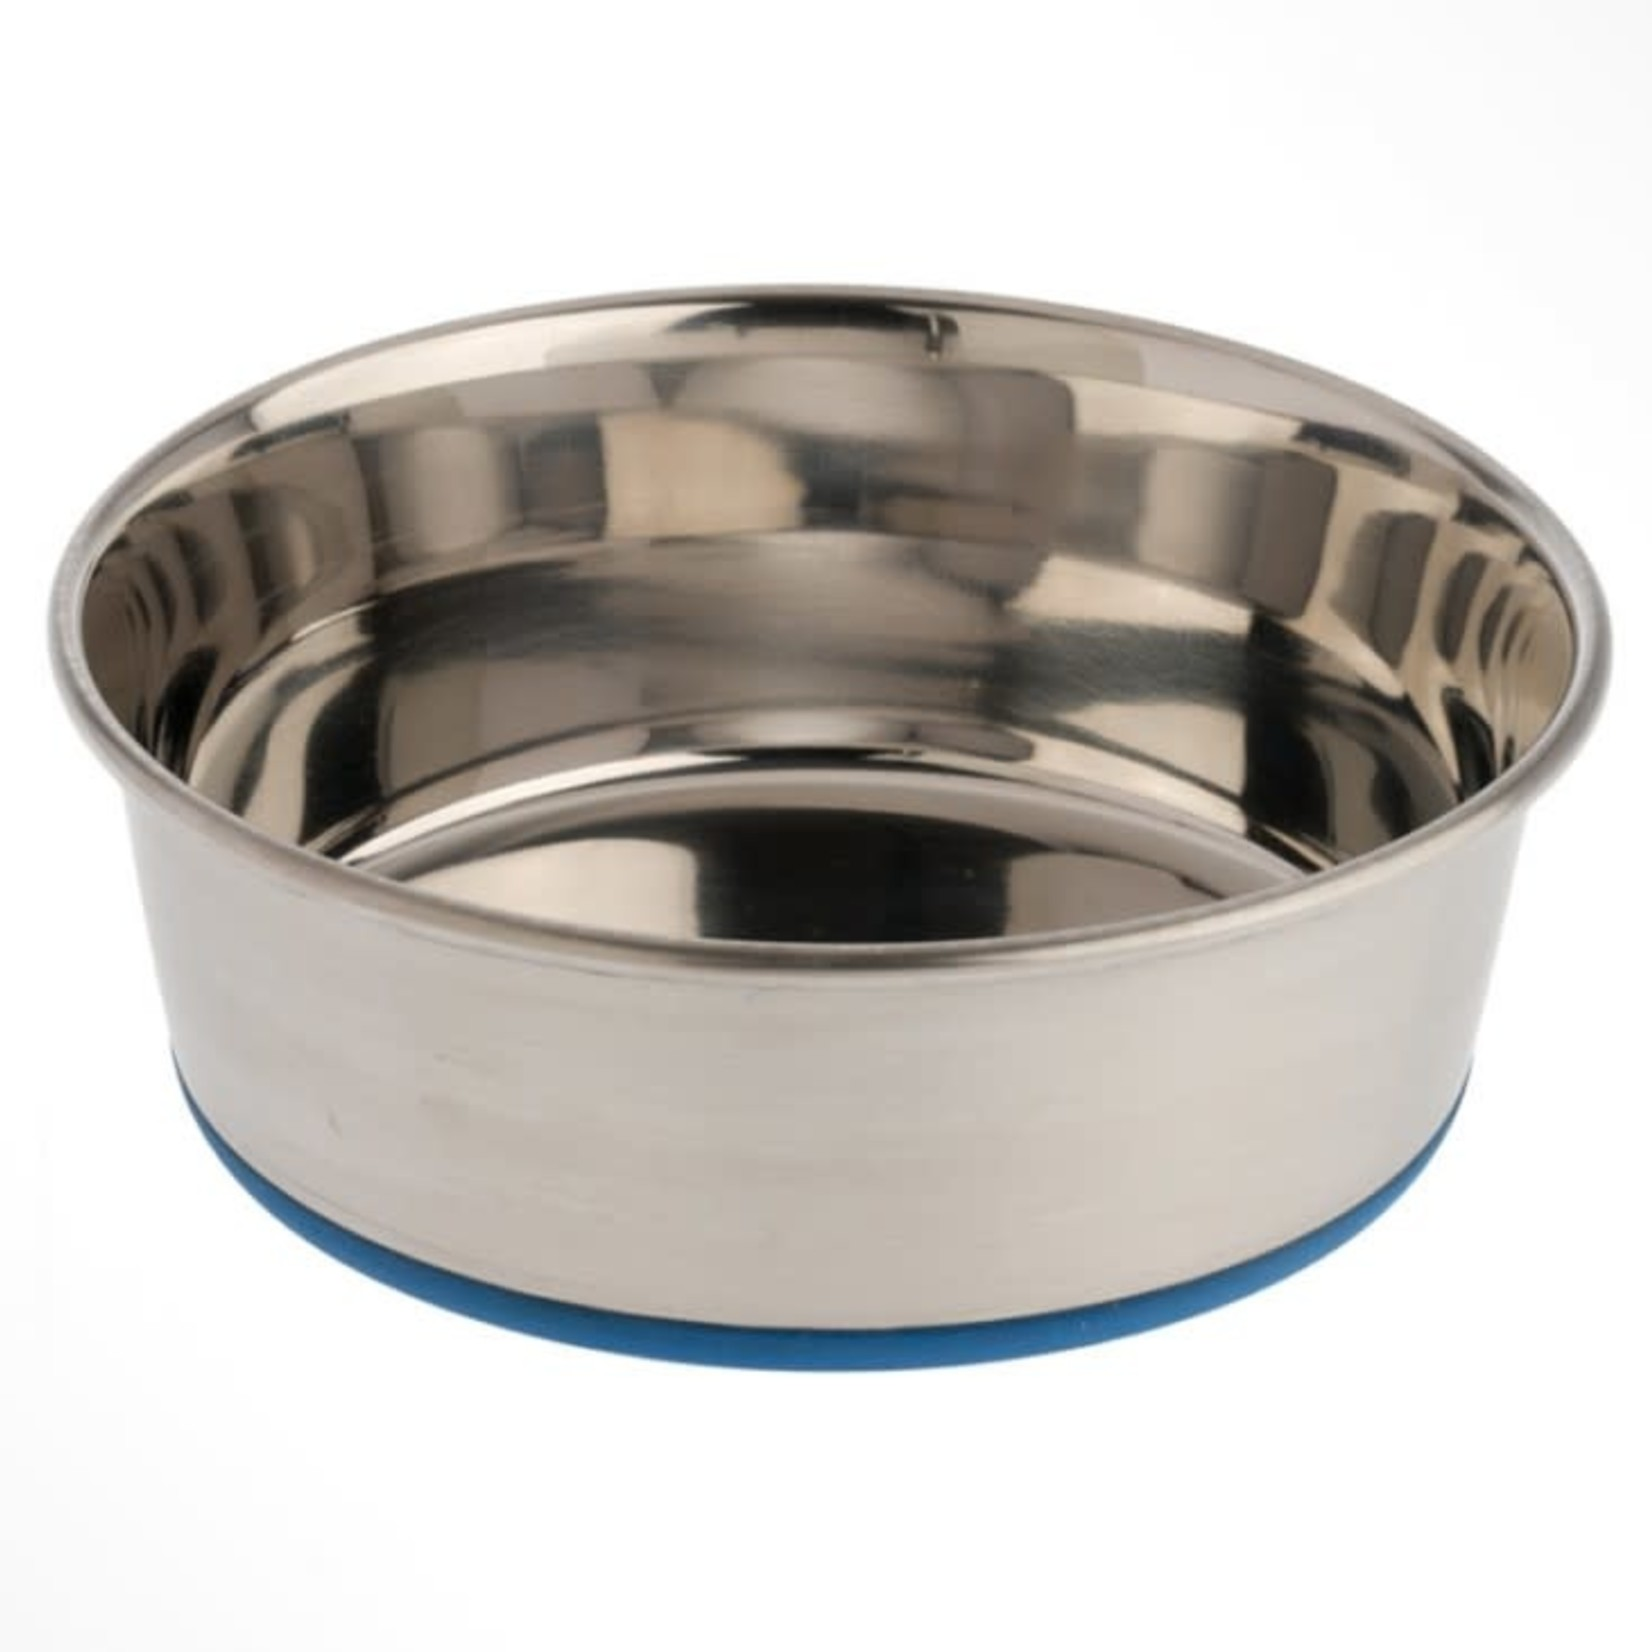 Our Pets Company Durapet Stainless Steel Bowl 3 Quart